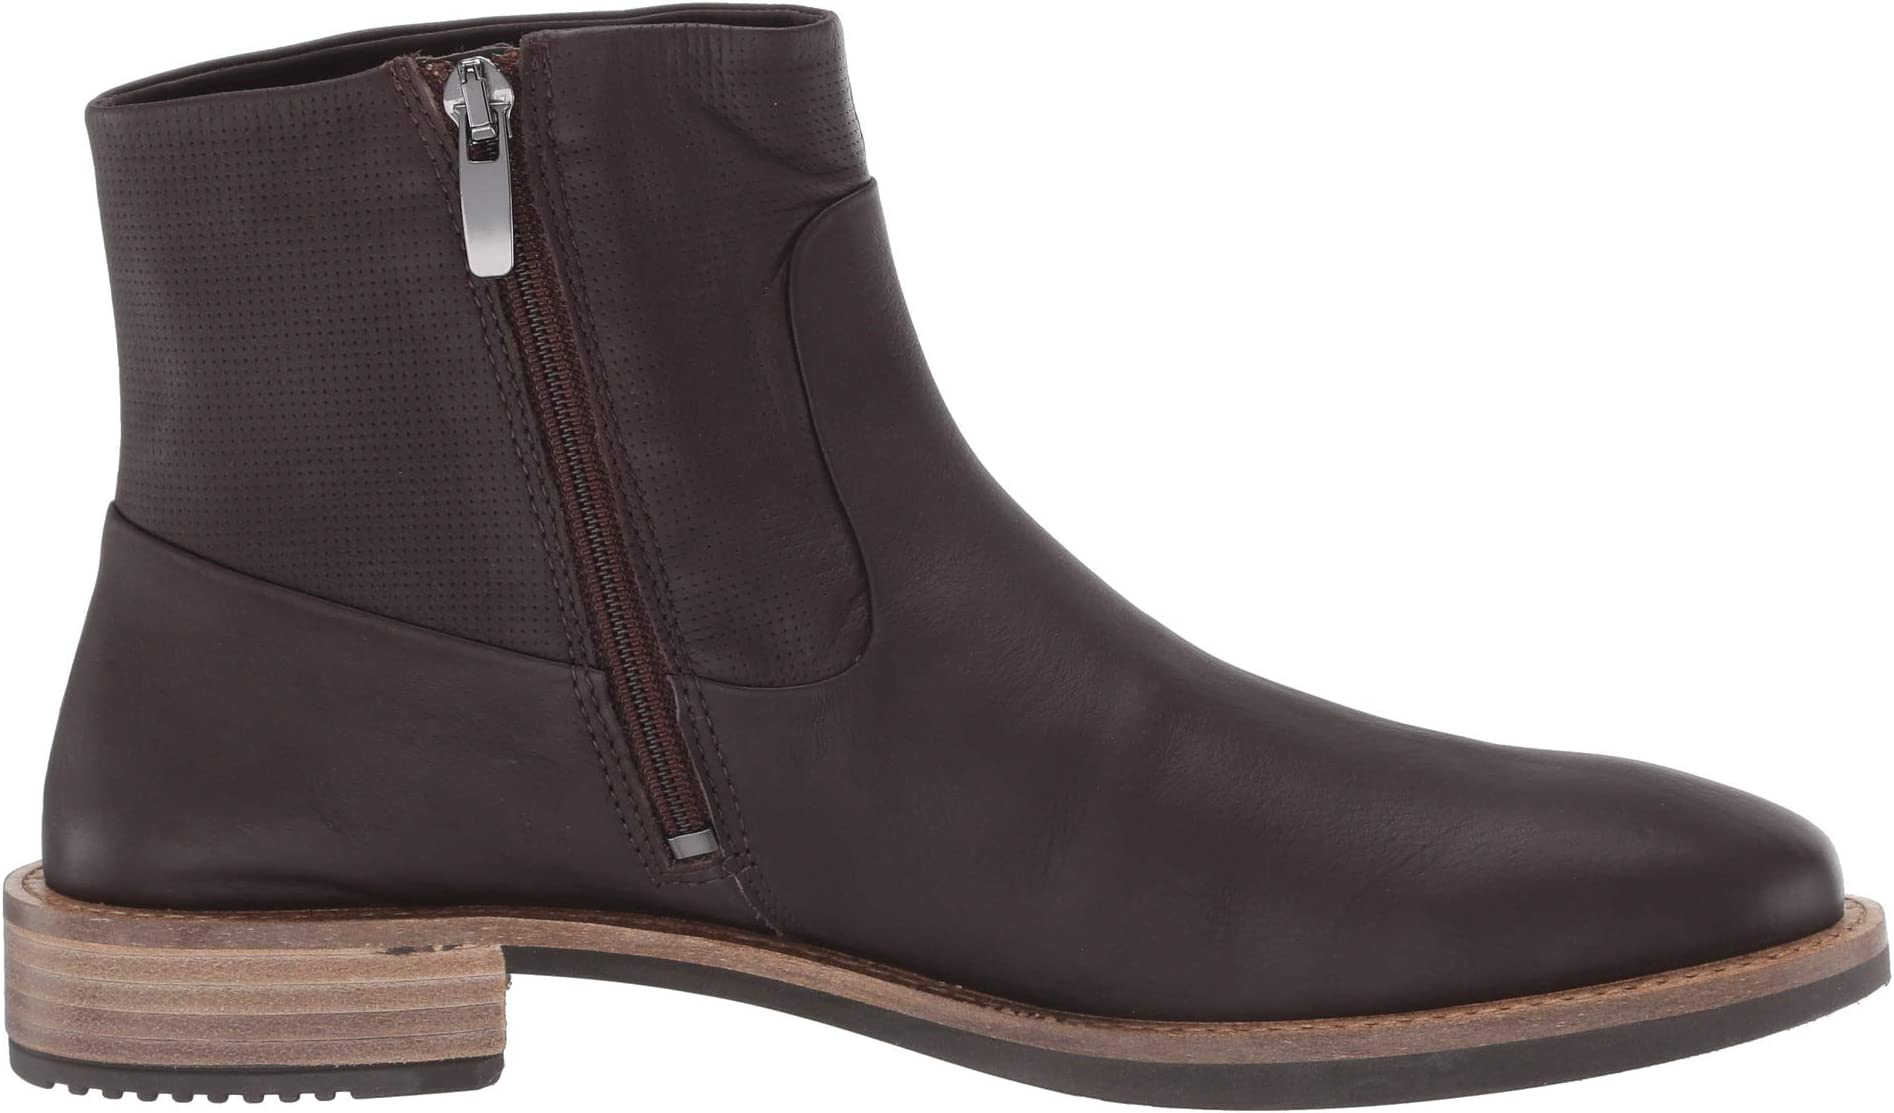 ECCO Sartorelle 25 Ankle Boot | Women's shoes | 2020 Newest